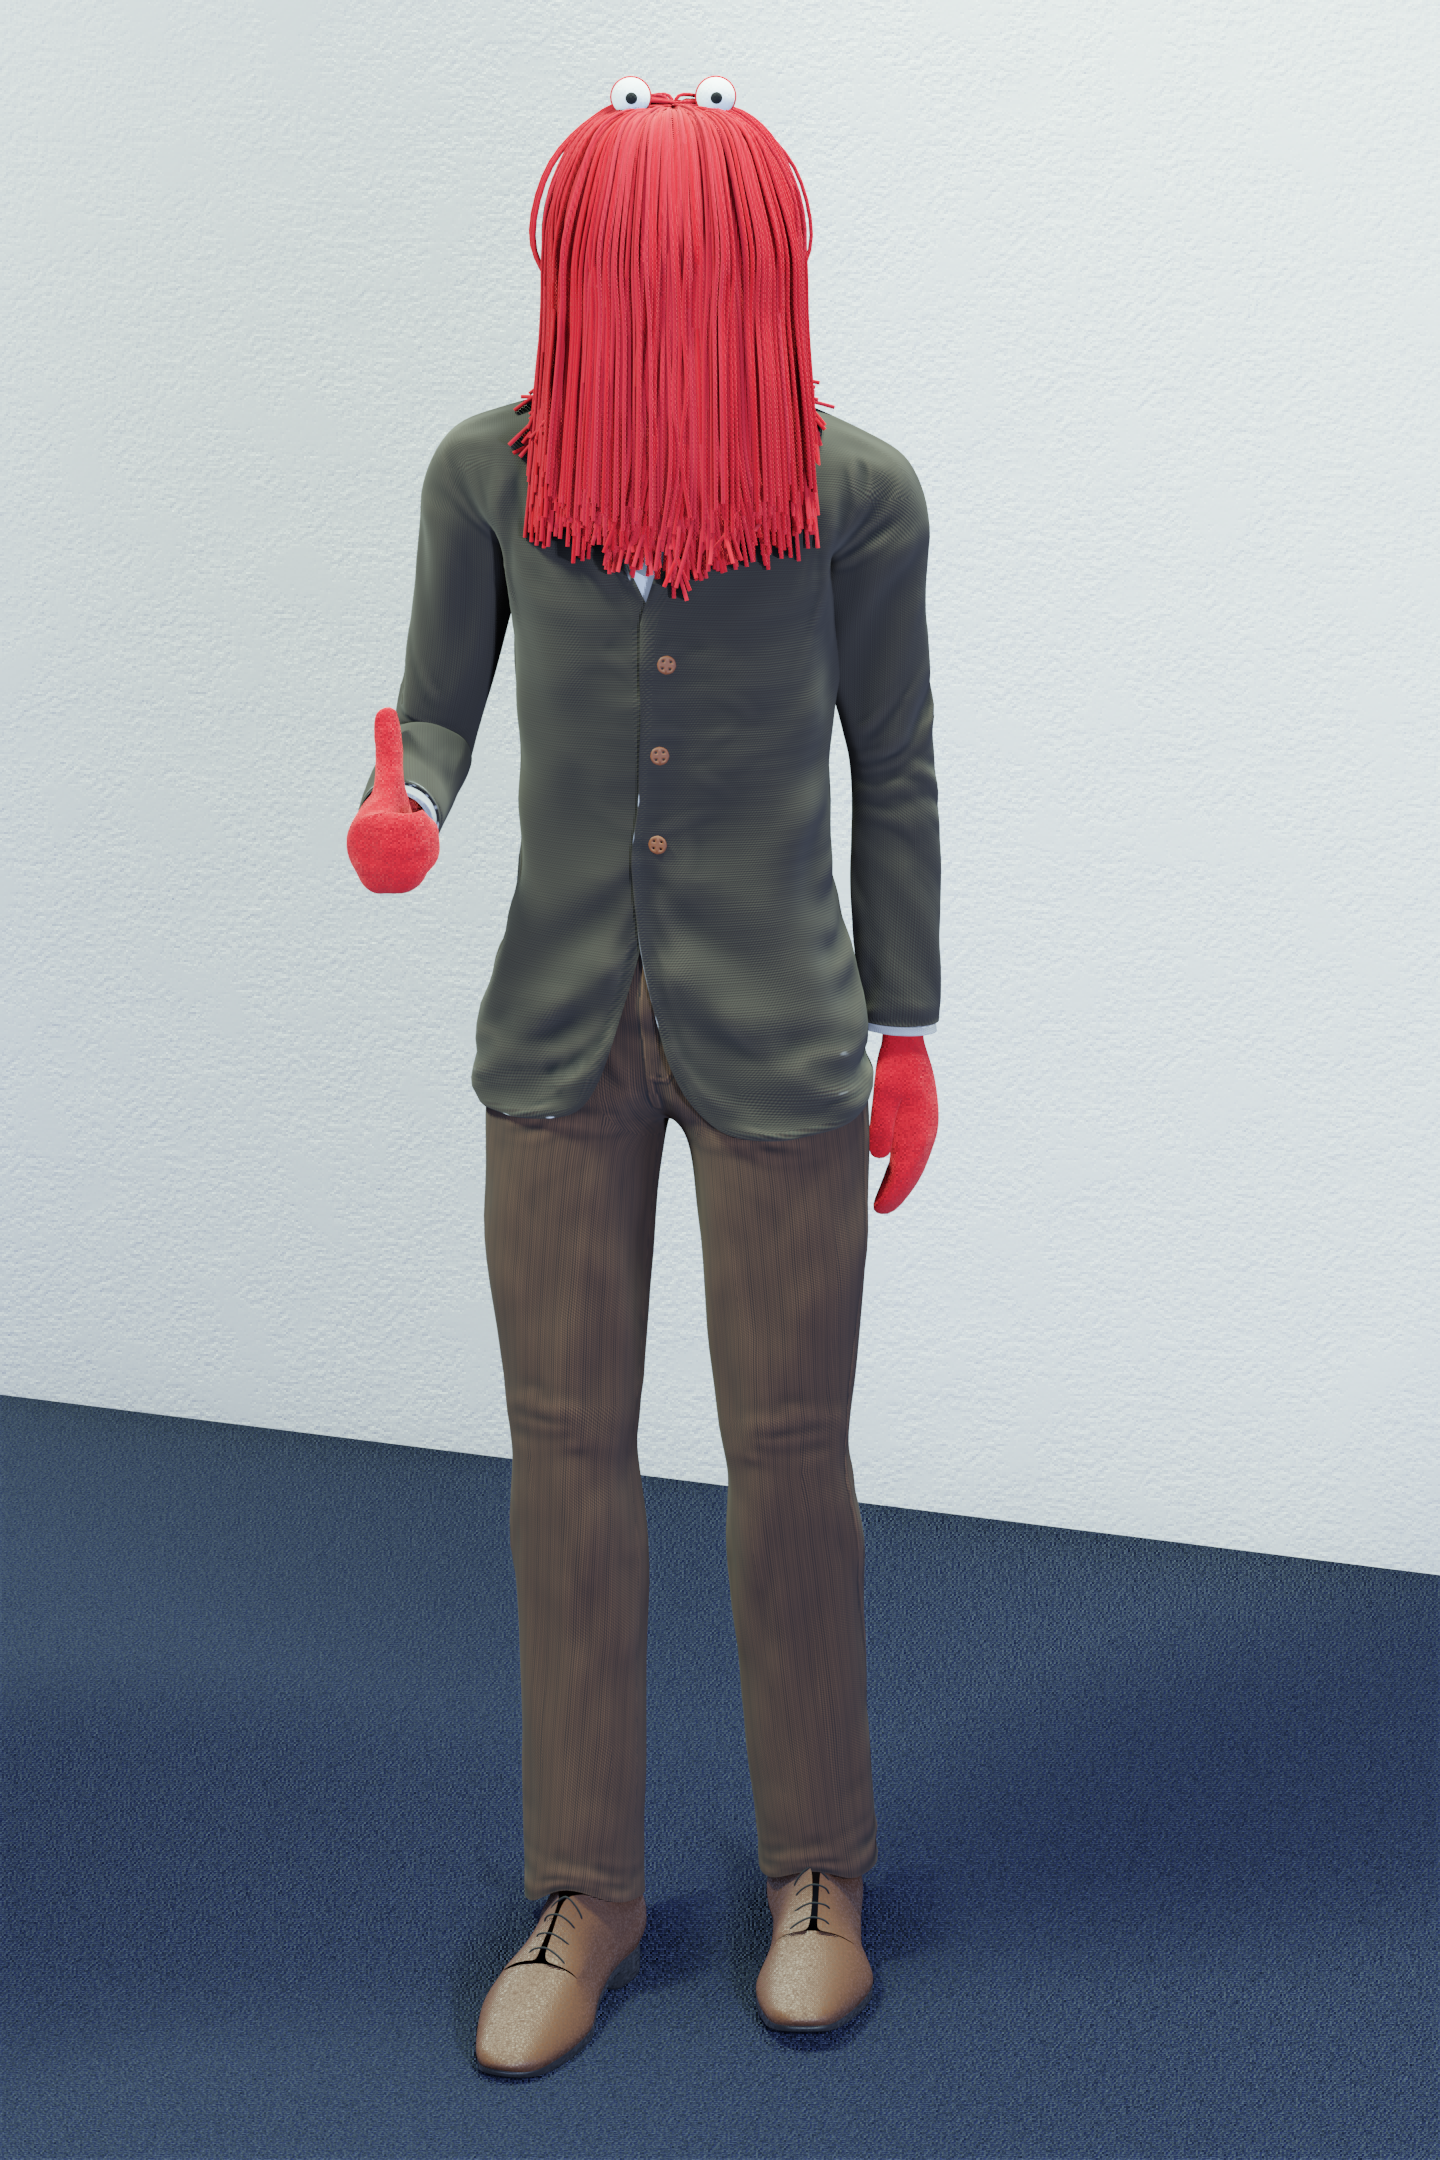 Red guy aka Harry from DHMIS